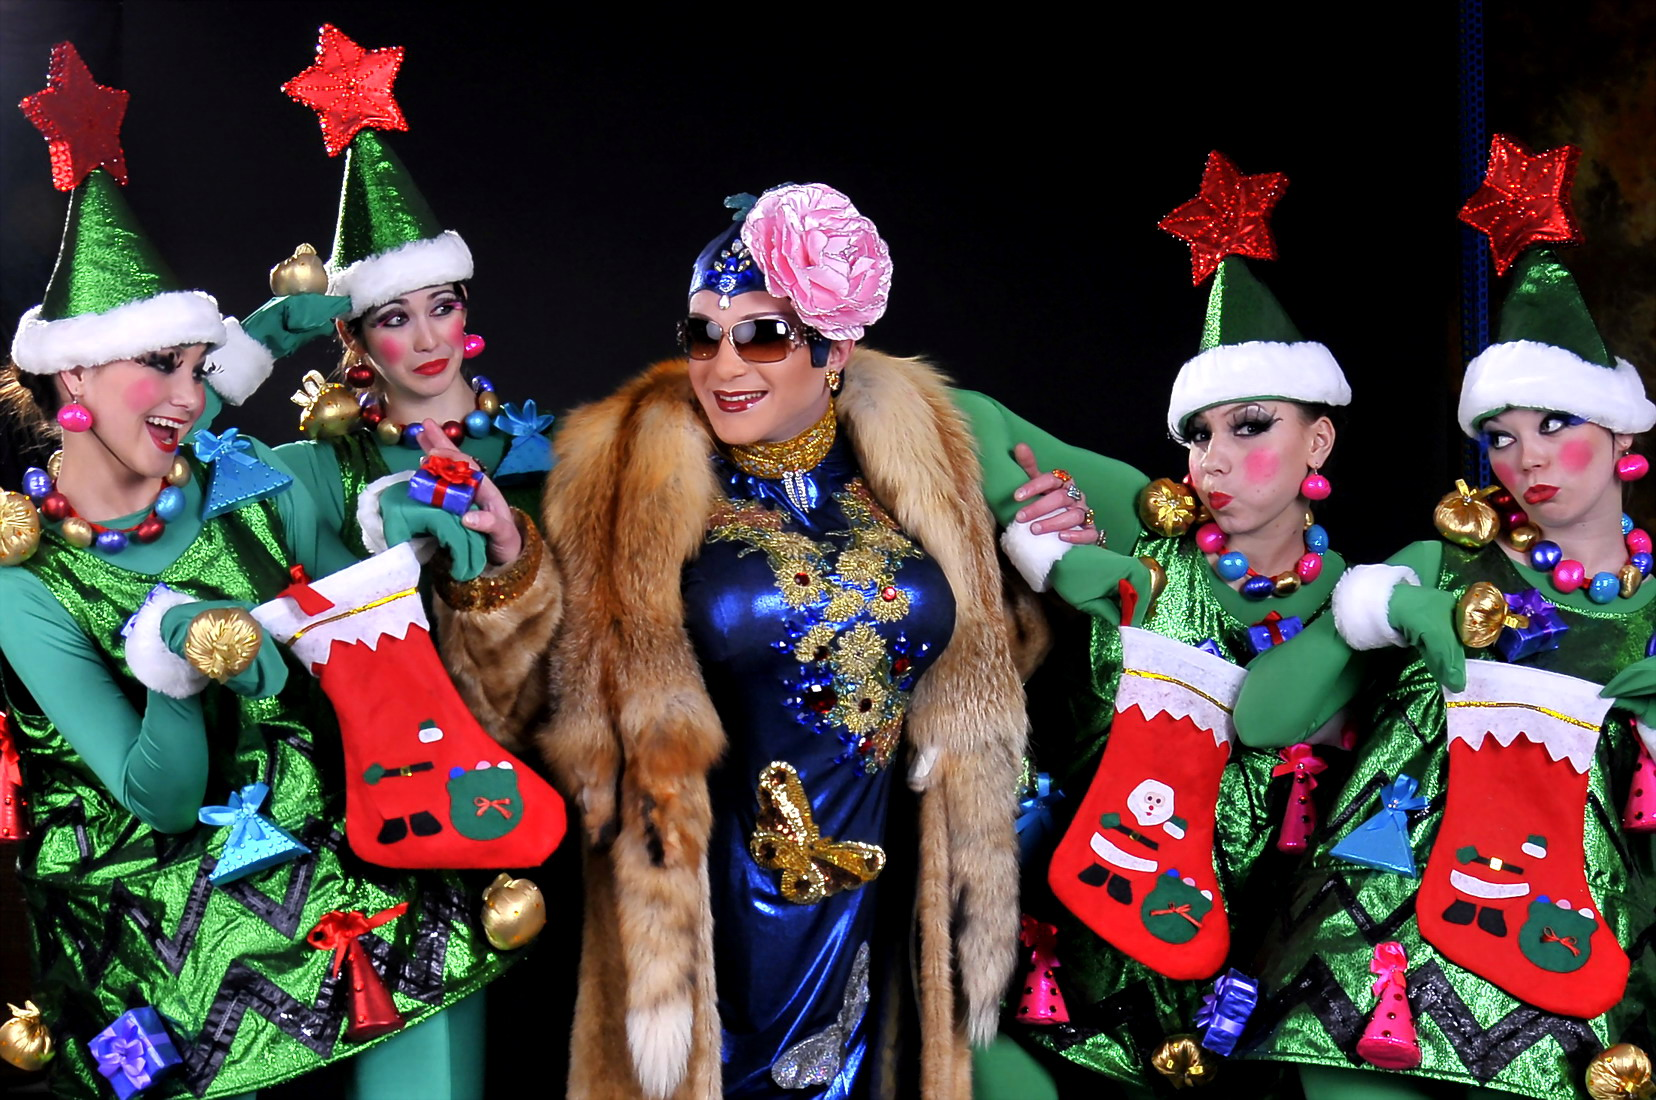 Though I am sure if we have faith, Verka Serduchka will save Christmas this year.